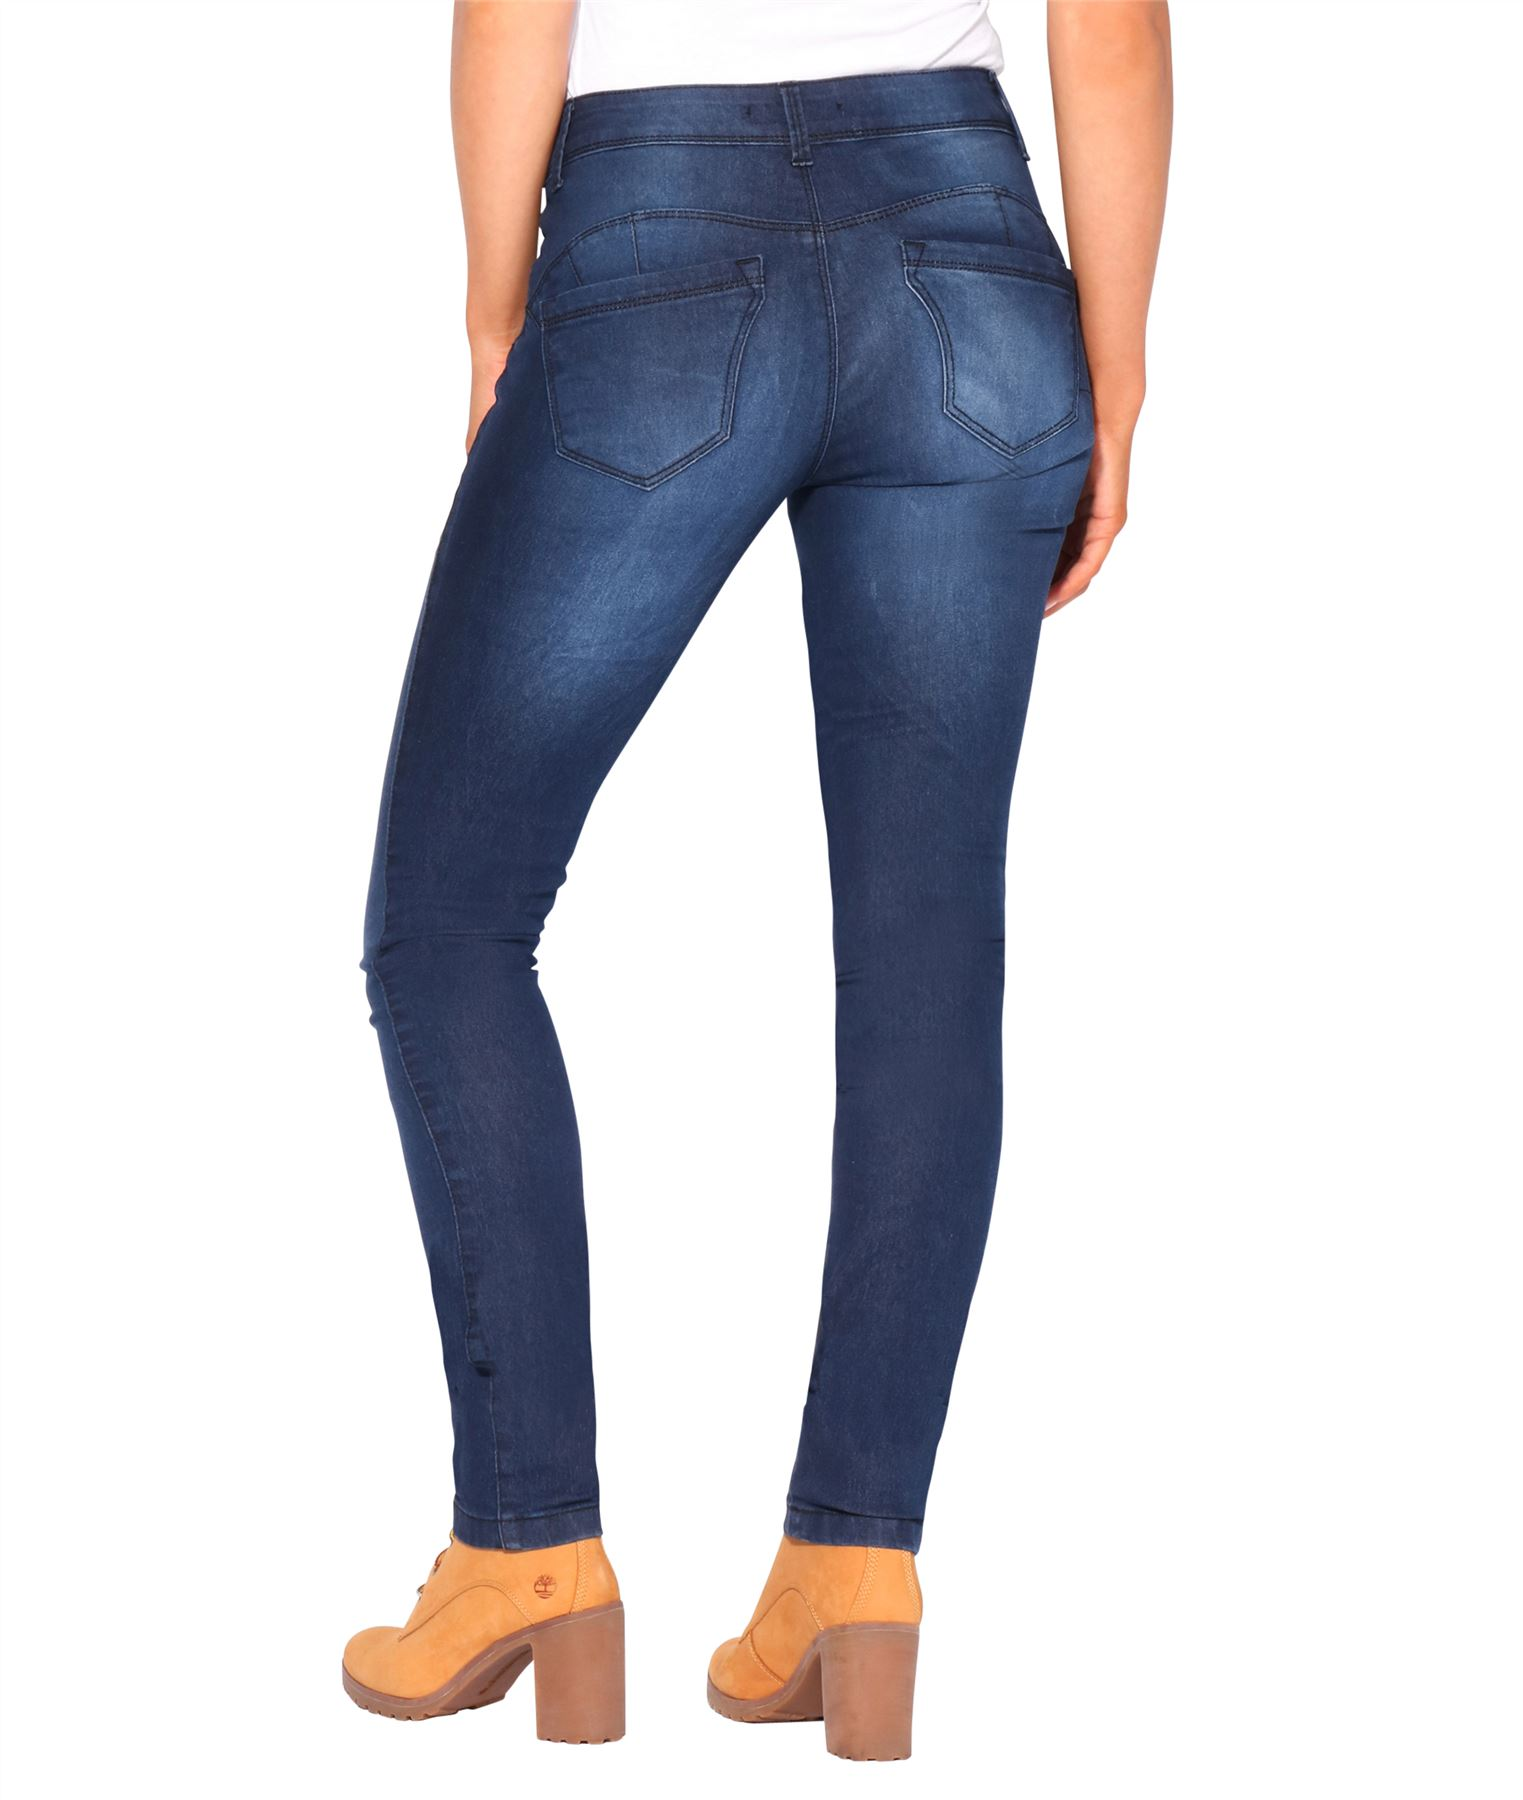 RRP £45 Womens Grey Lift slim and shape Skinny Jeans Flattering Style Denim